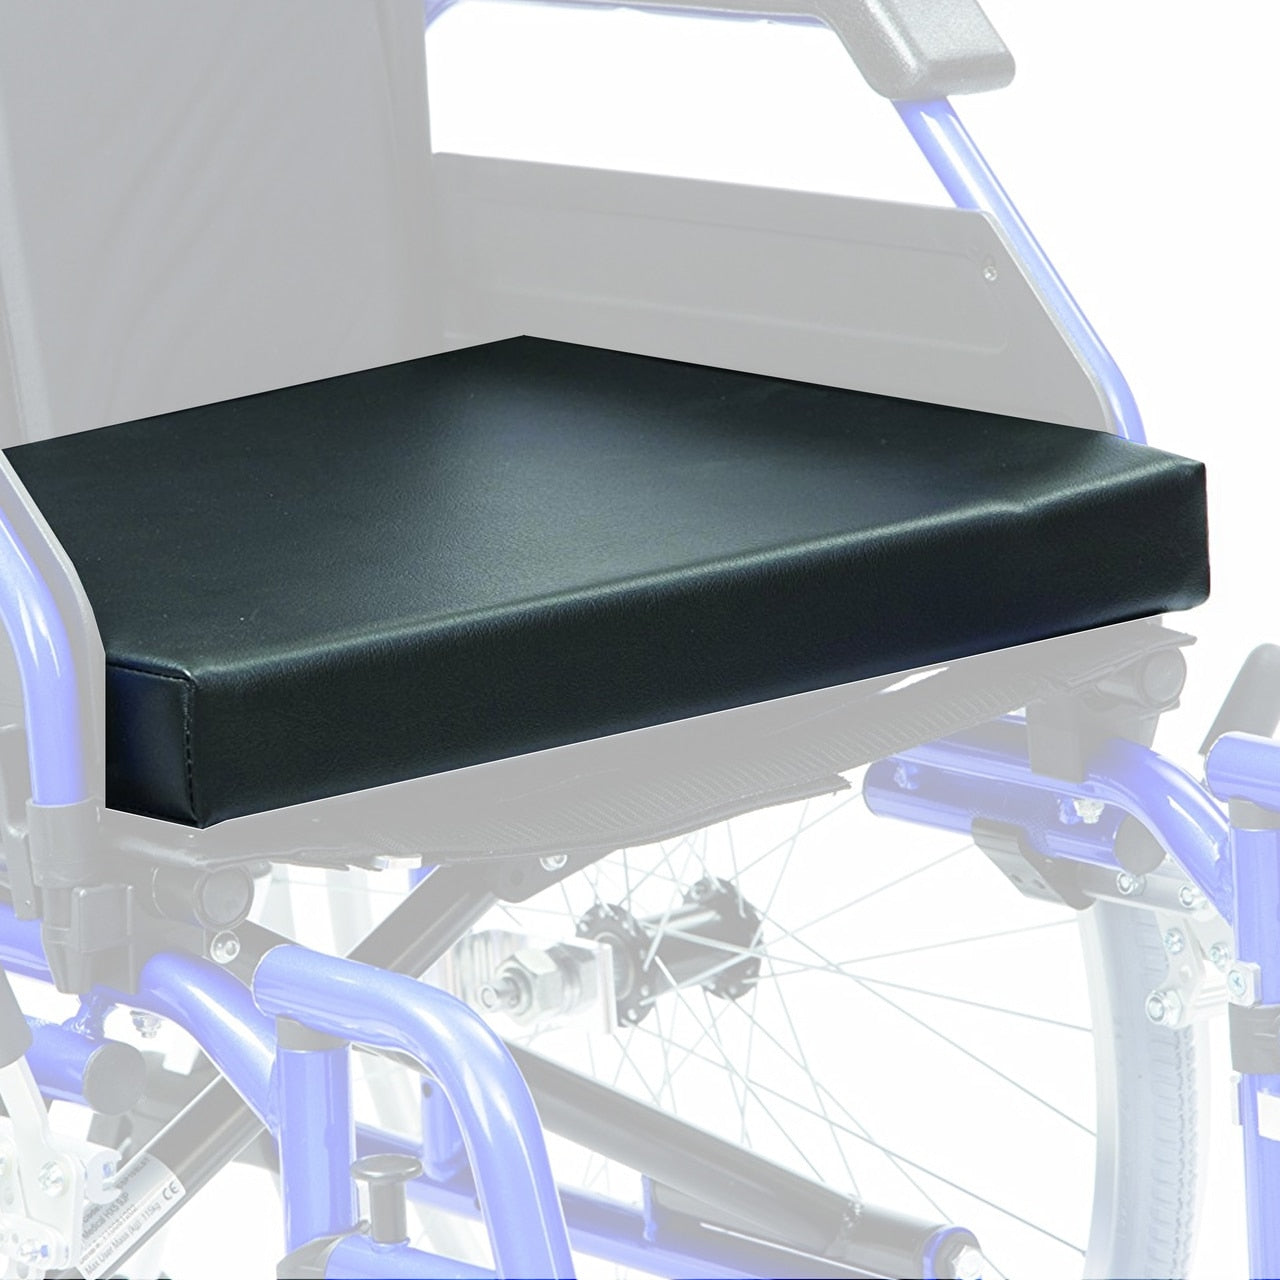 Drive 16 Vinyl Wheelchair Cushion